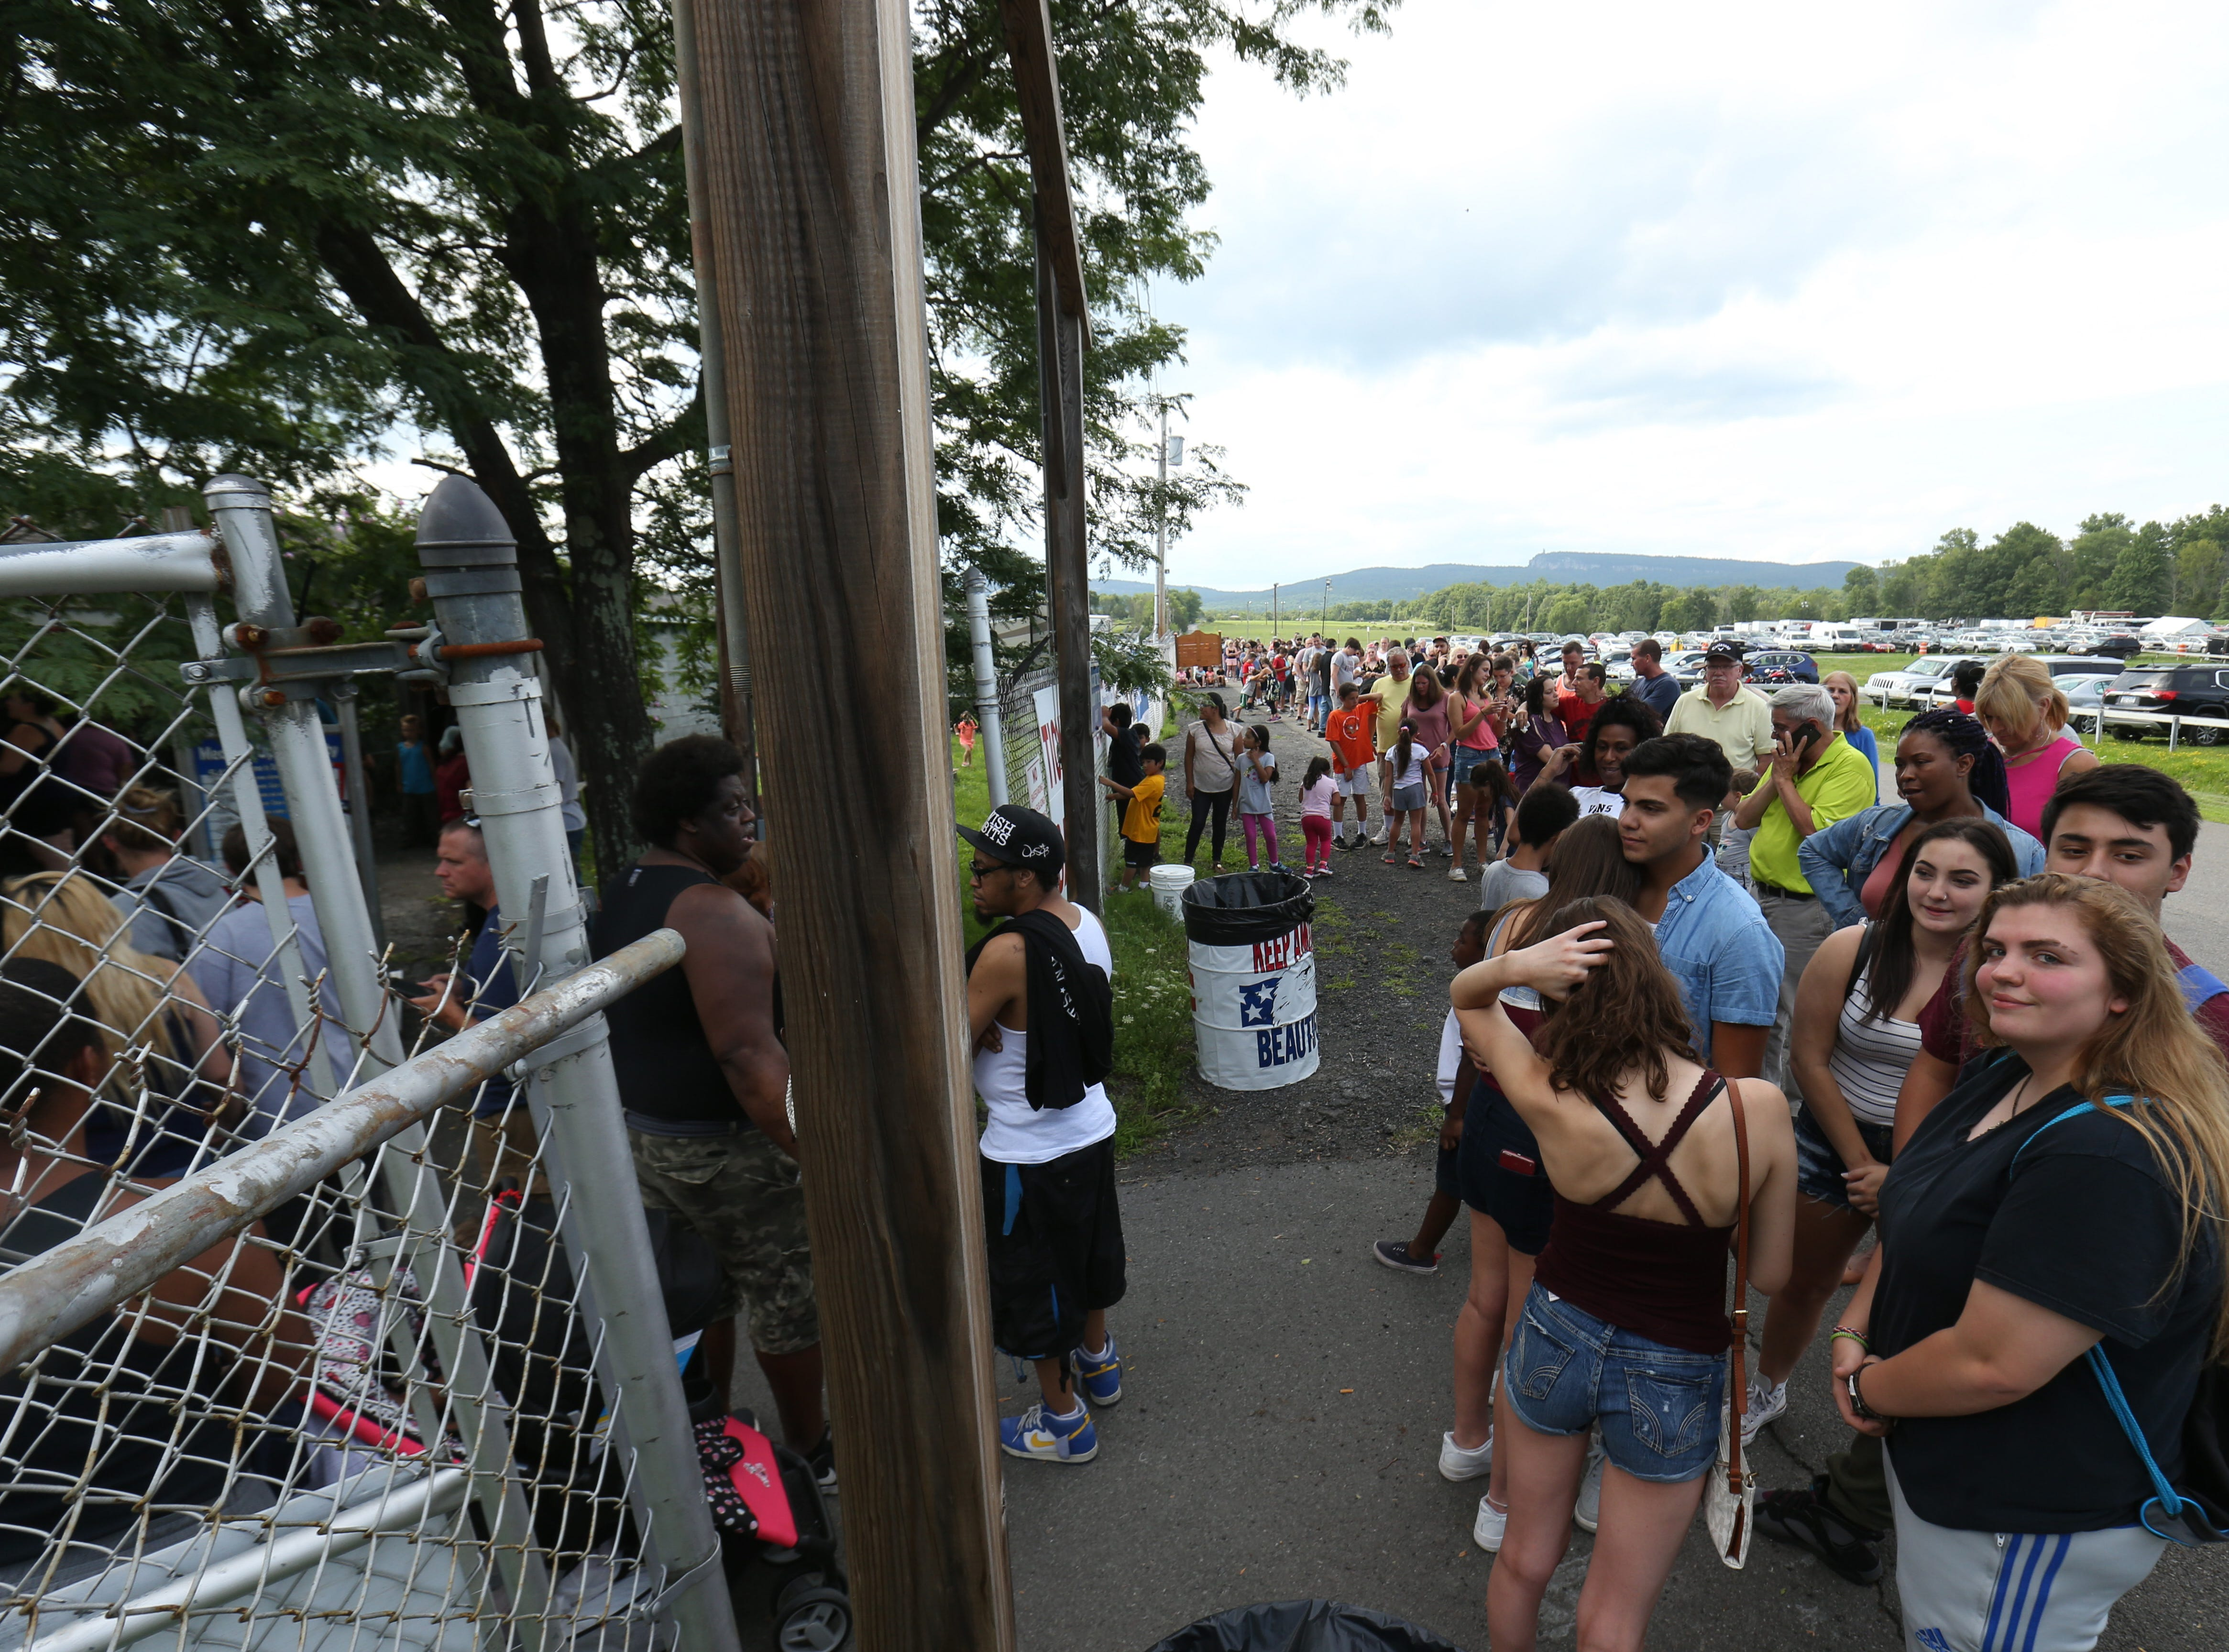 A crowd lines up outside the ticket booth at the Ulster County Fair for opening day in New Paltz on July 31, 2018.